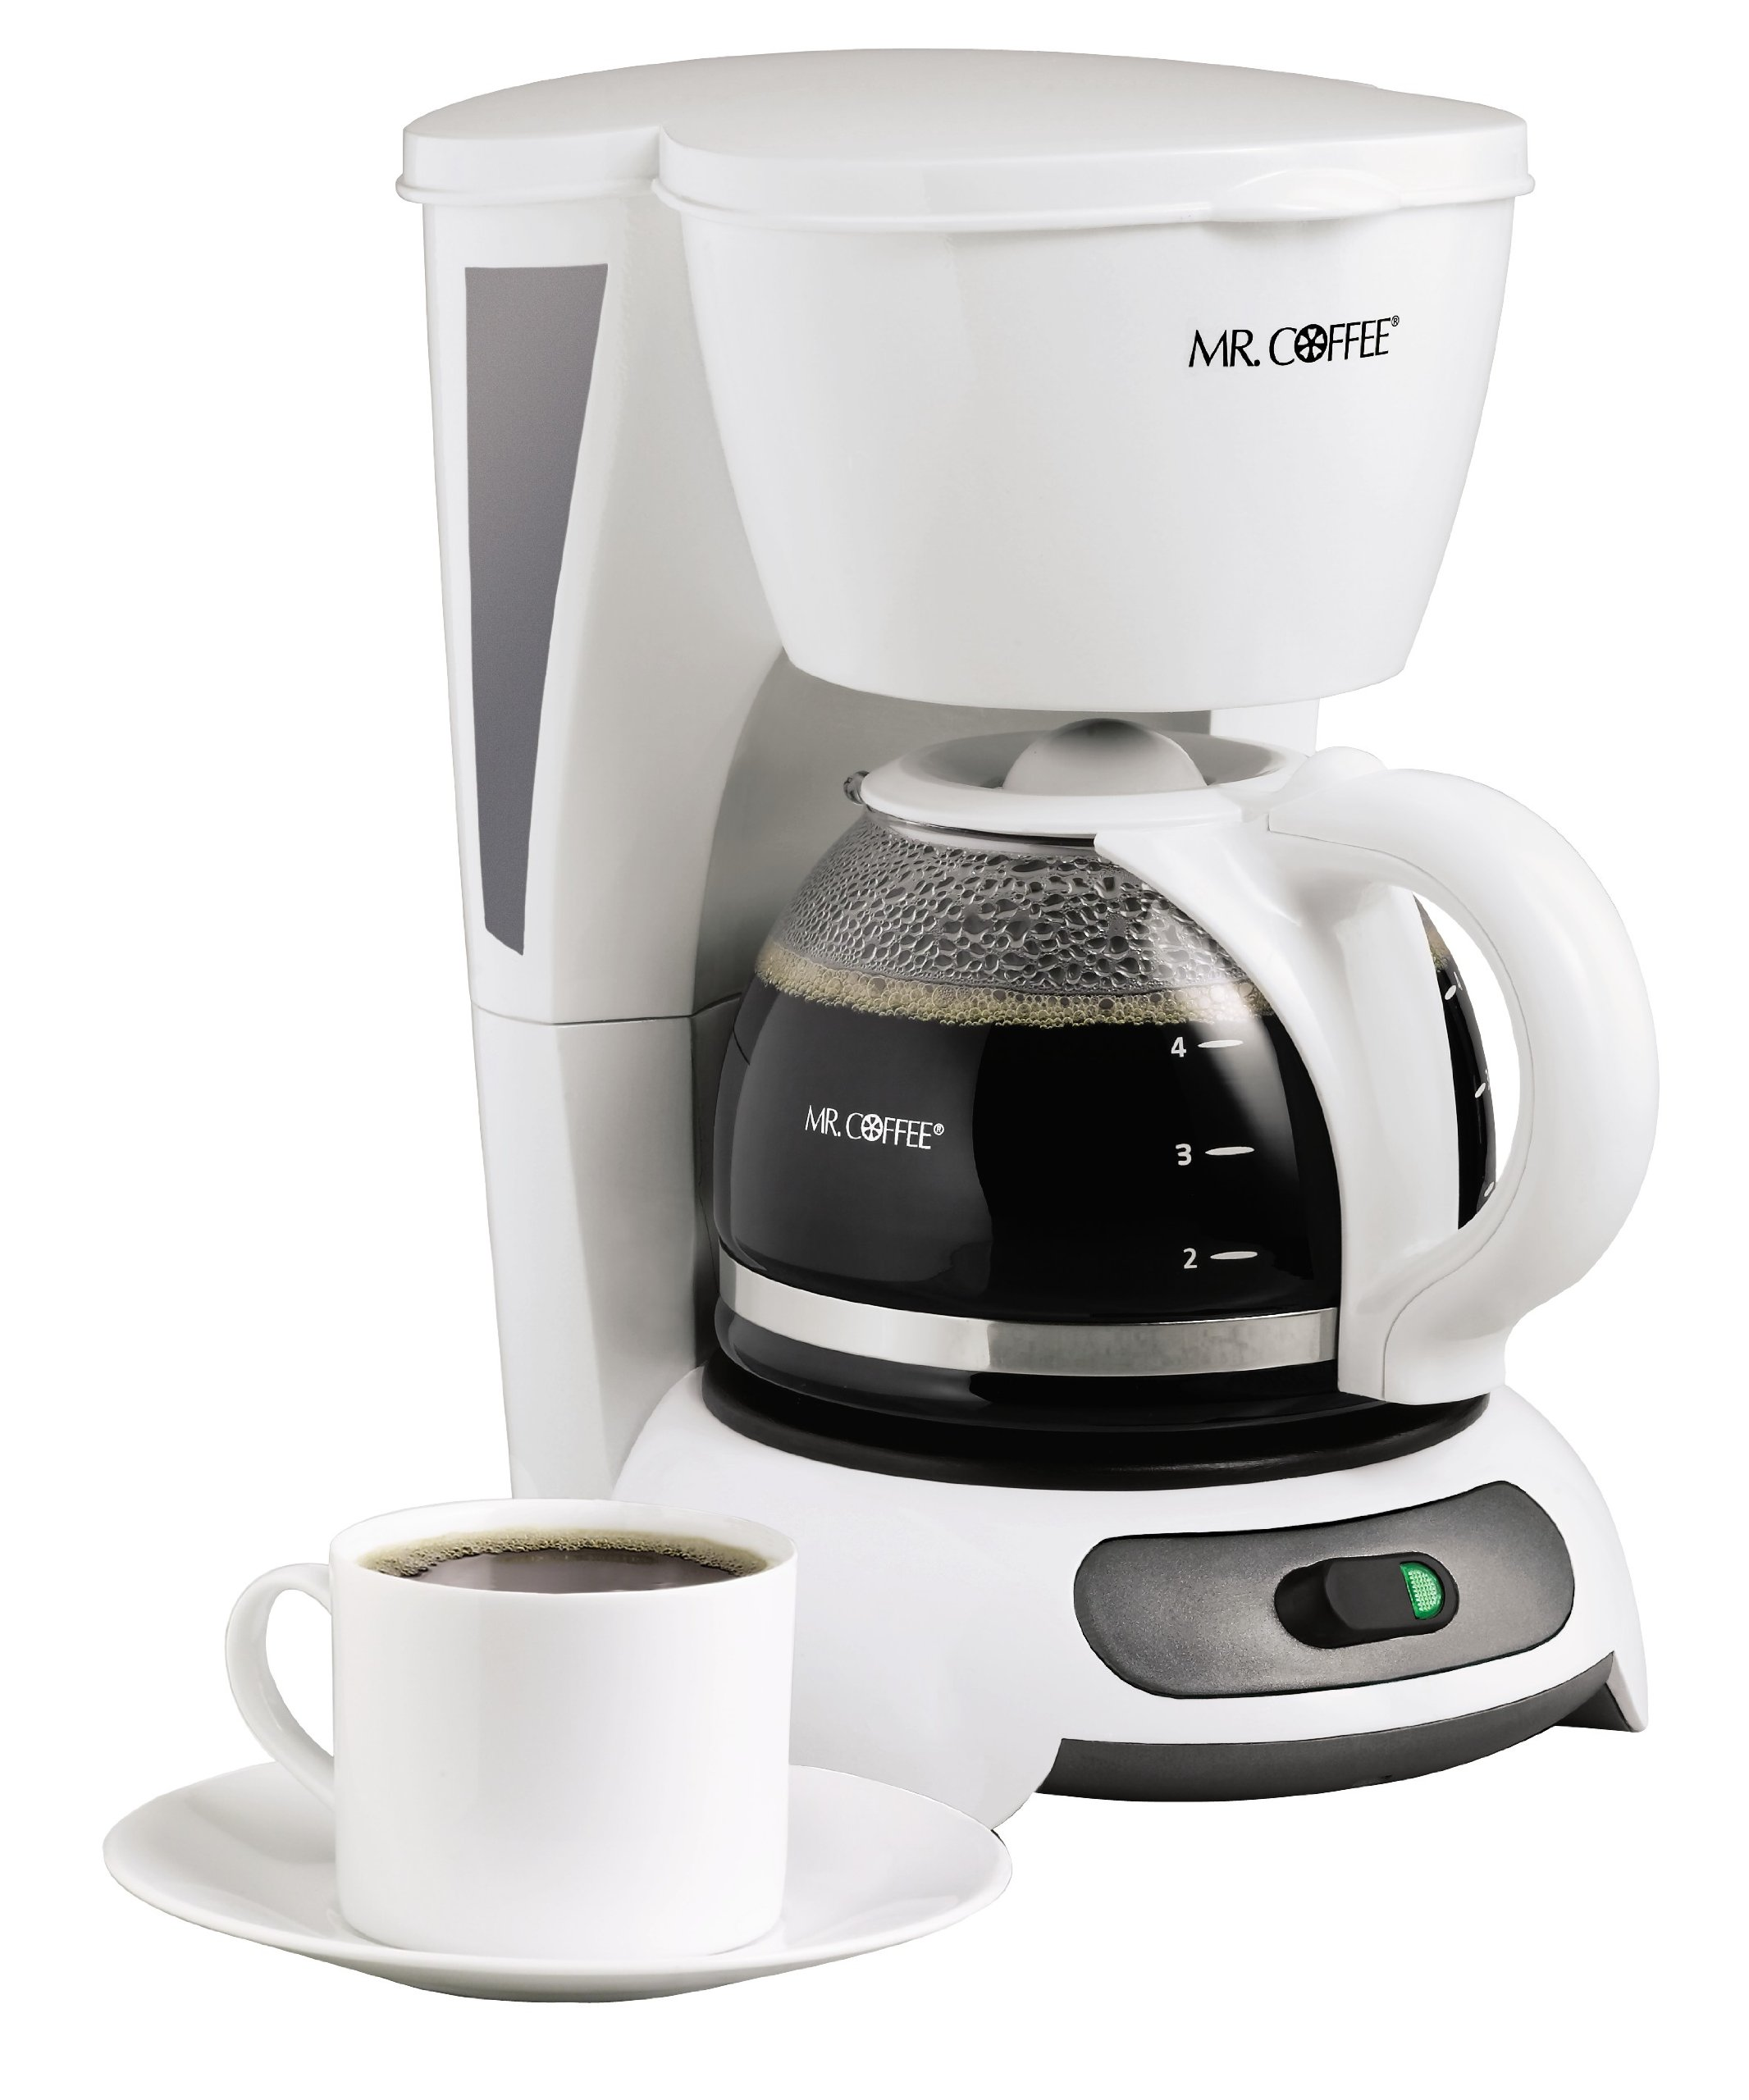 Mr Coffee 4 Cup Switch Maker